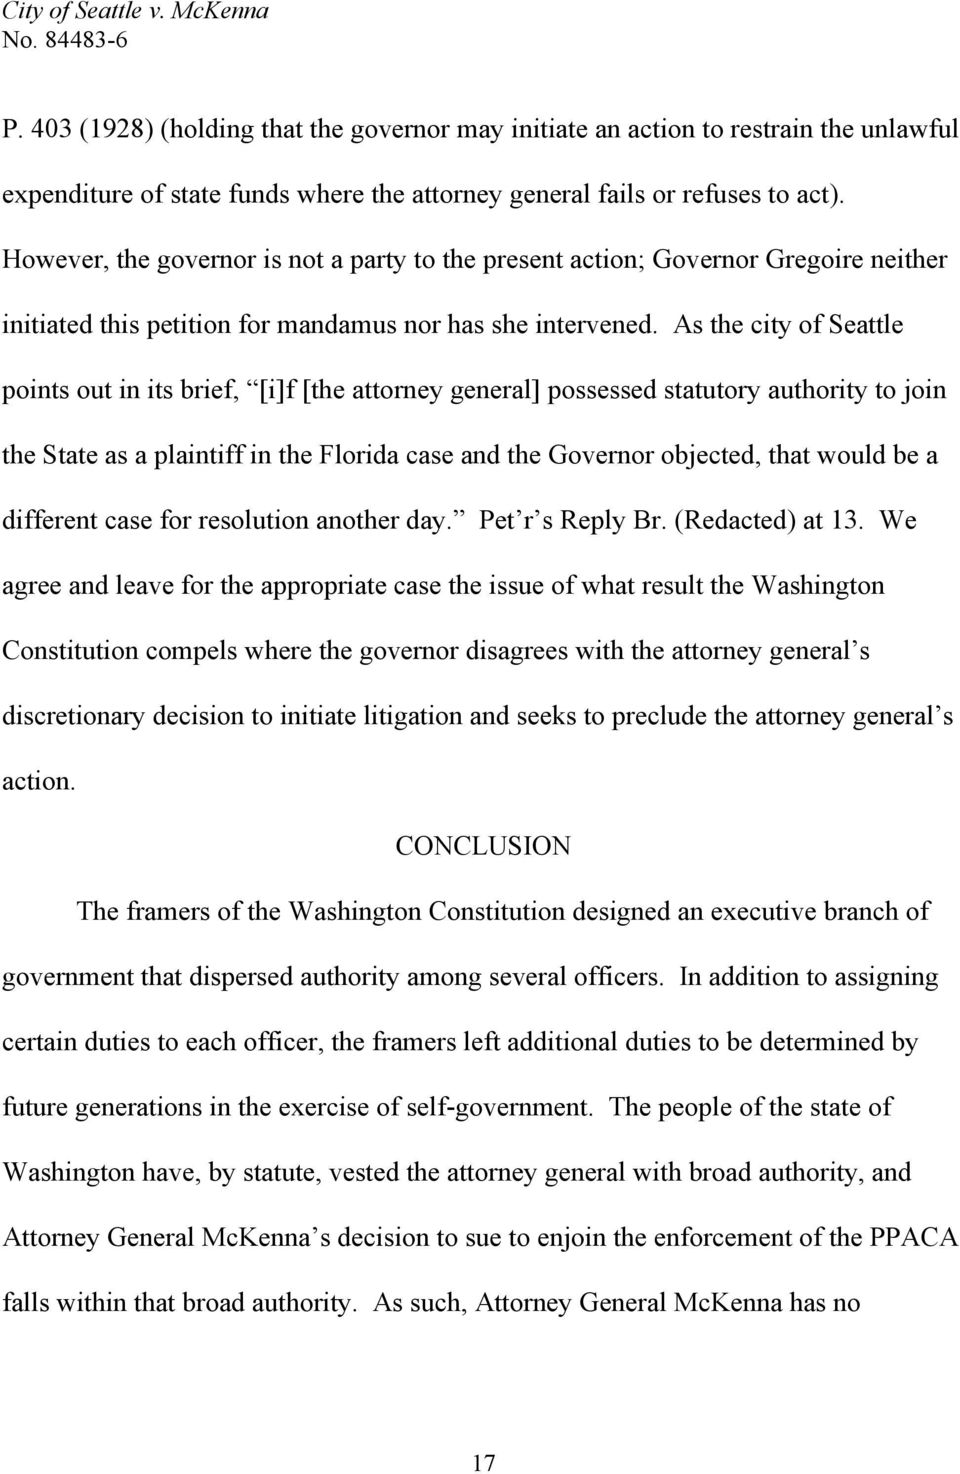 As the city of Seattle points out in its brief, [i]f [the attorney general] possessed statutory authority to join the State as a plaintiff in the Florida case and the Governor objected, that would be